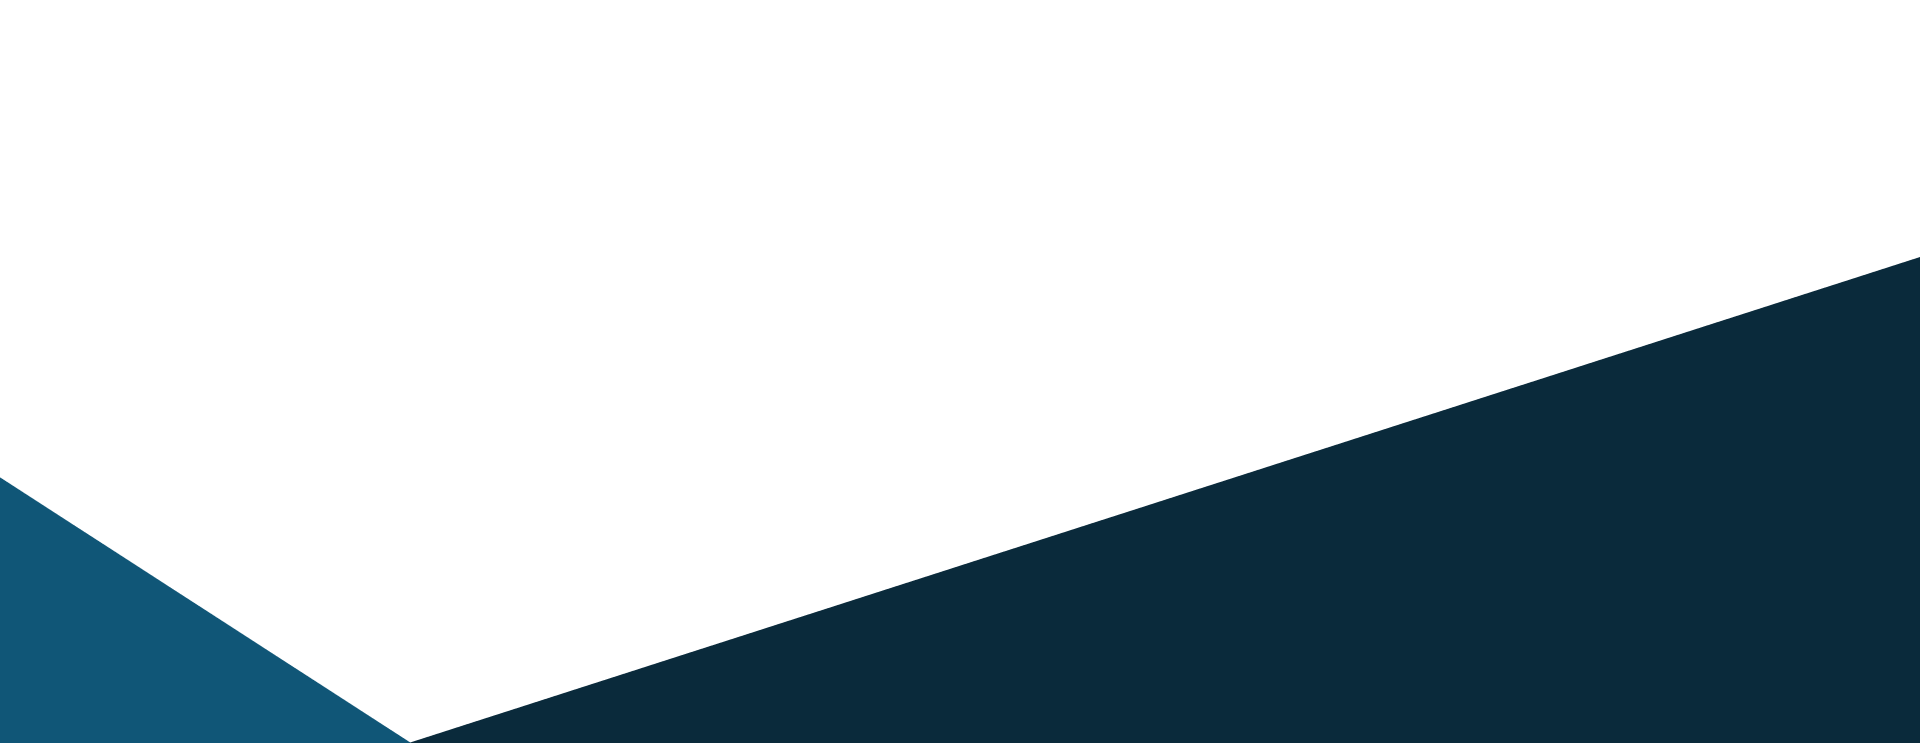 Envision Conference Center, event space in Brentwood, TN, small event space, meeting rooms and classroom space for rent, call Envision today!